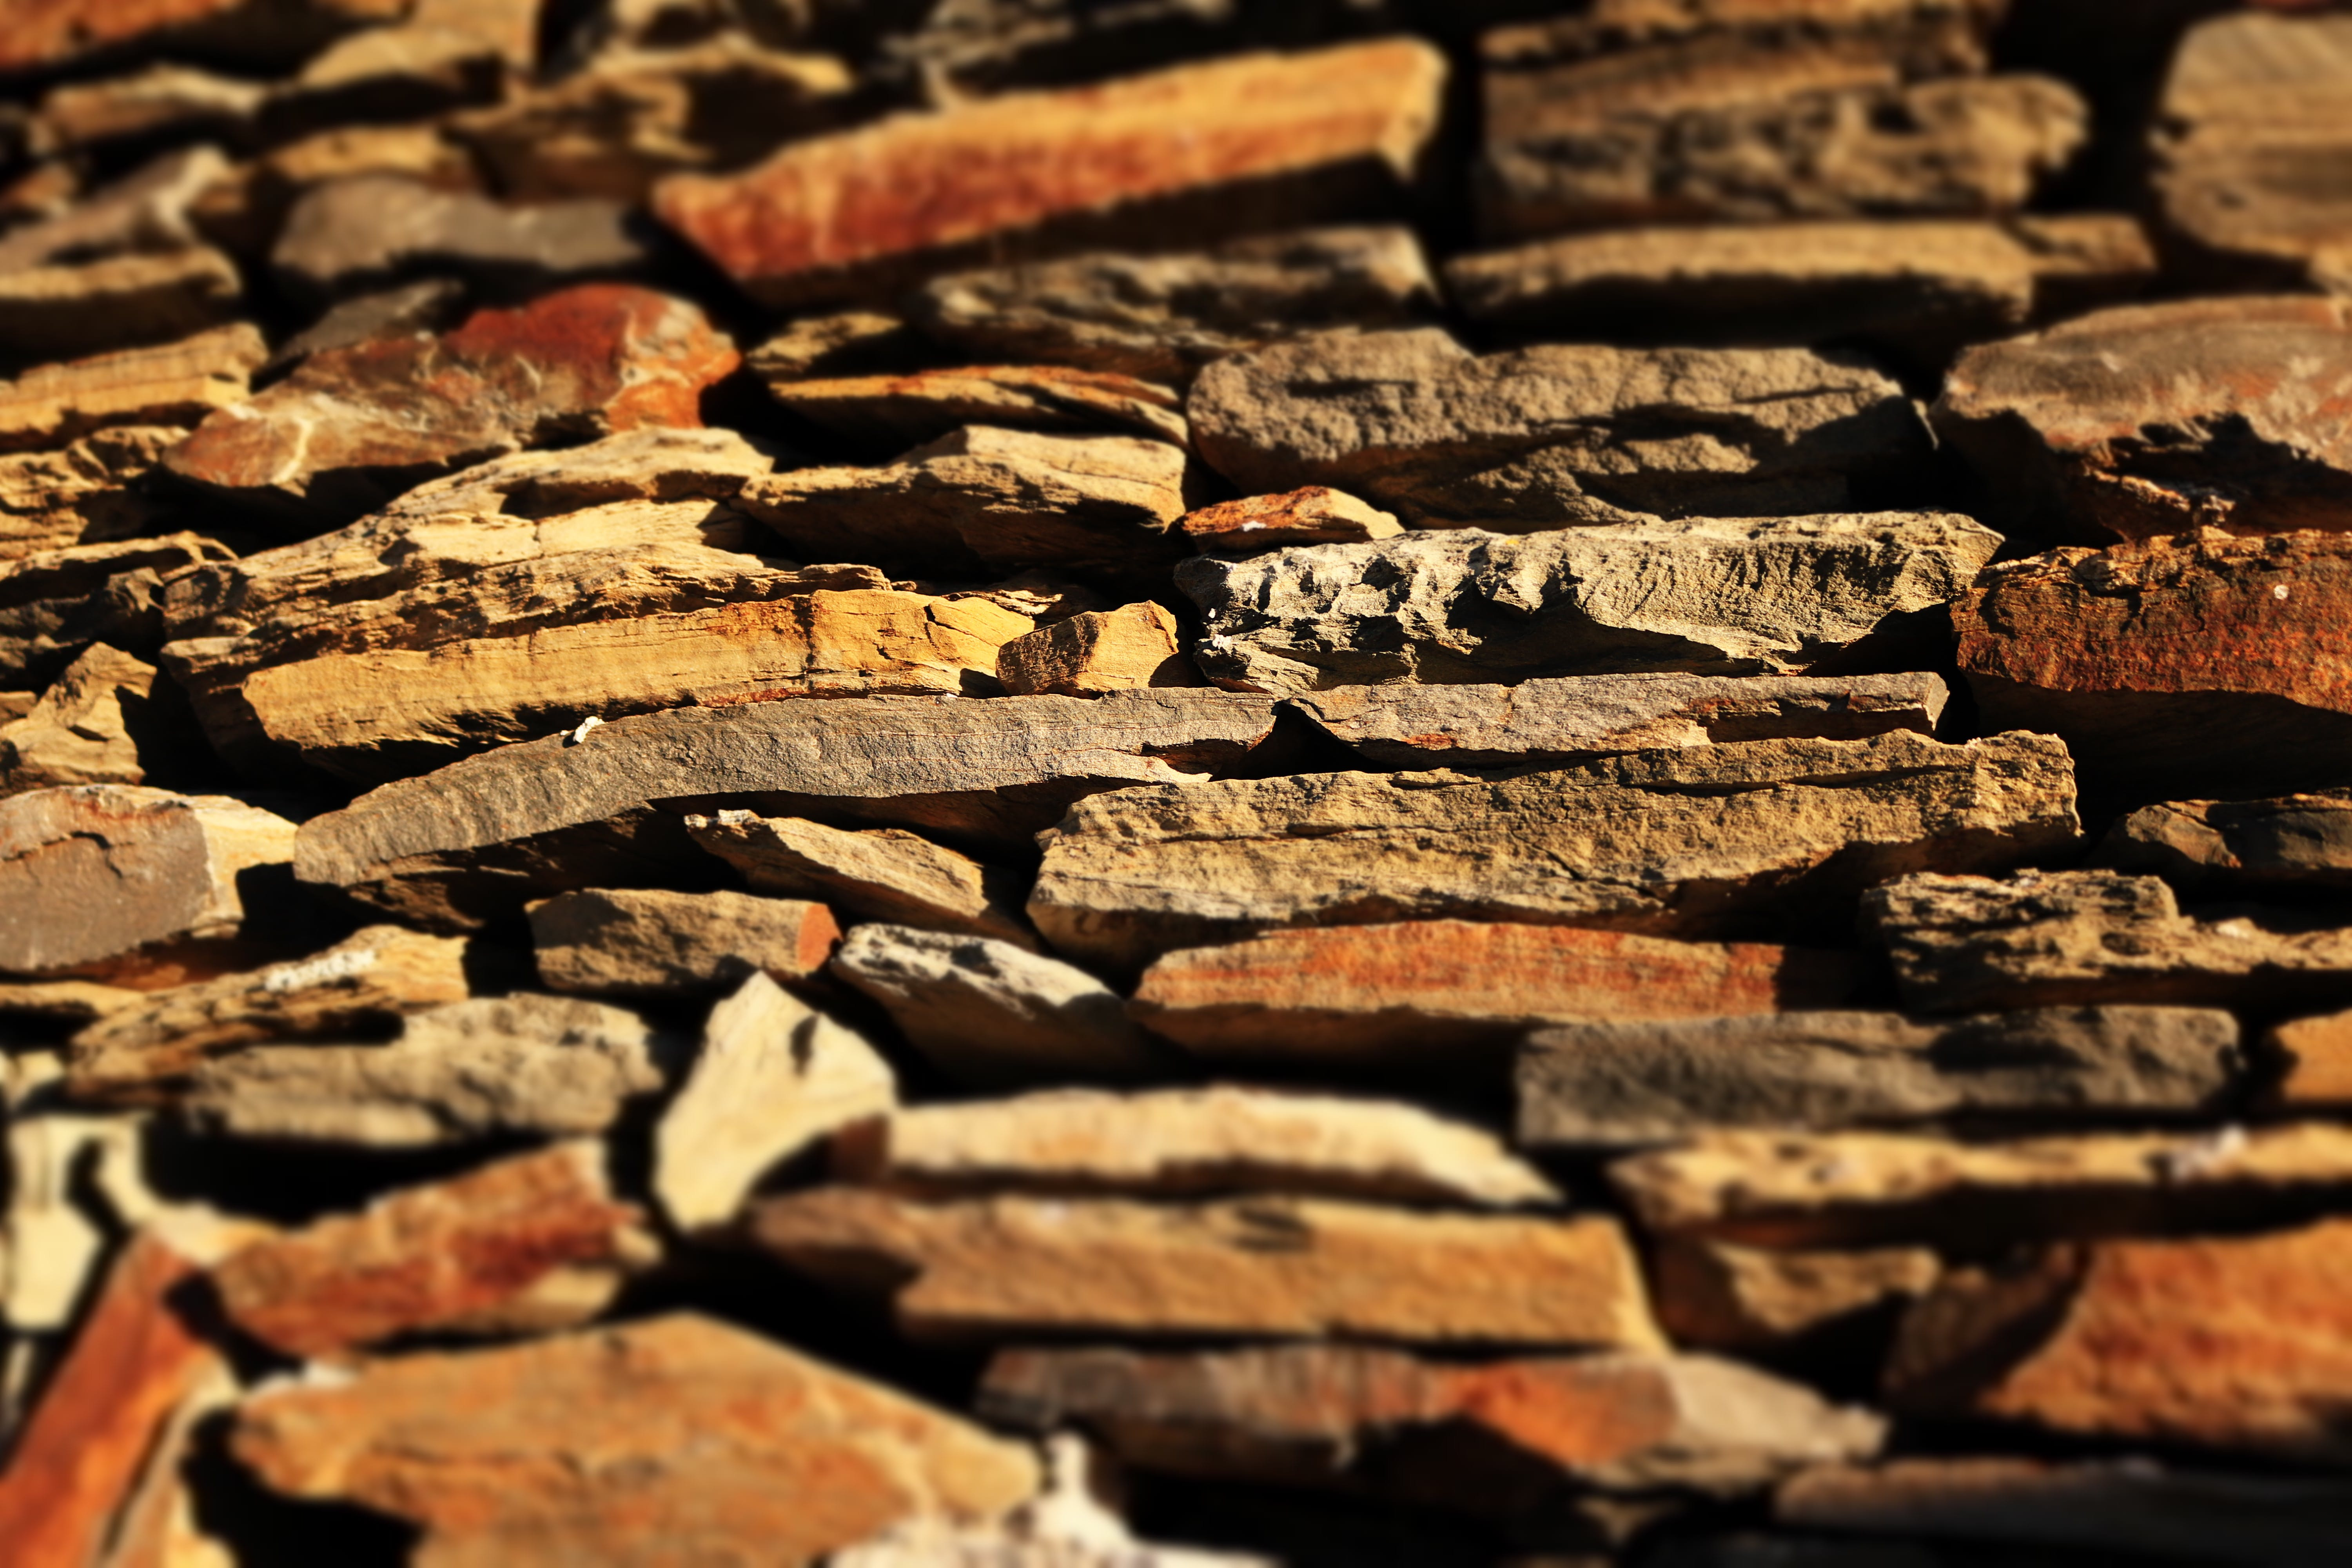 Shallow Focus Photography of Brown and Gray Concrete Stones